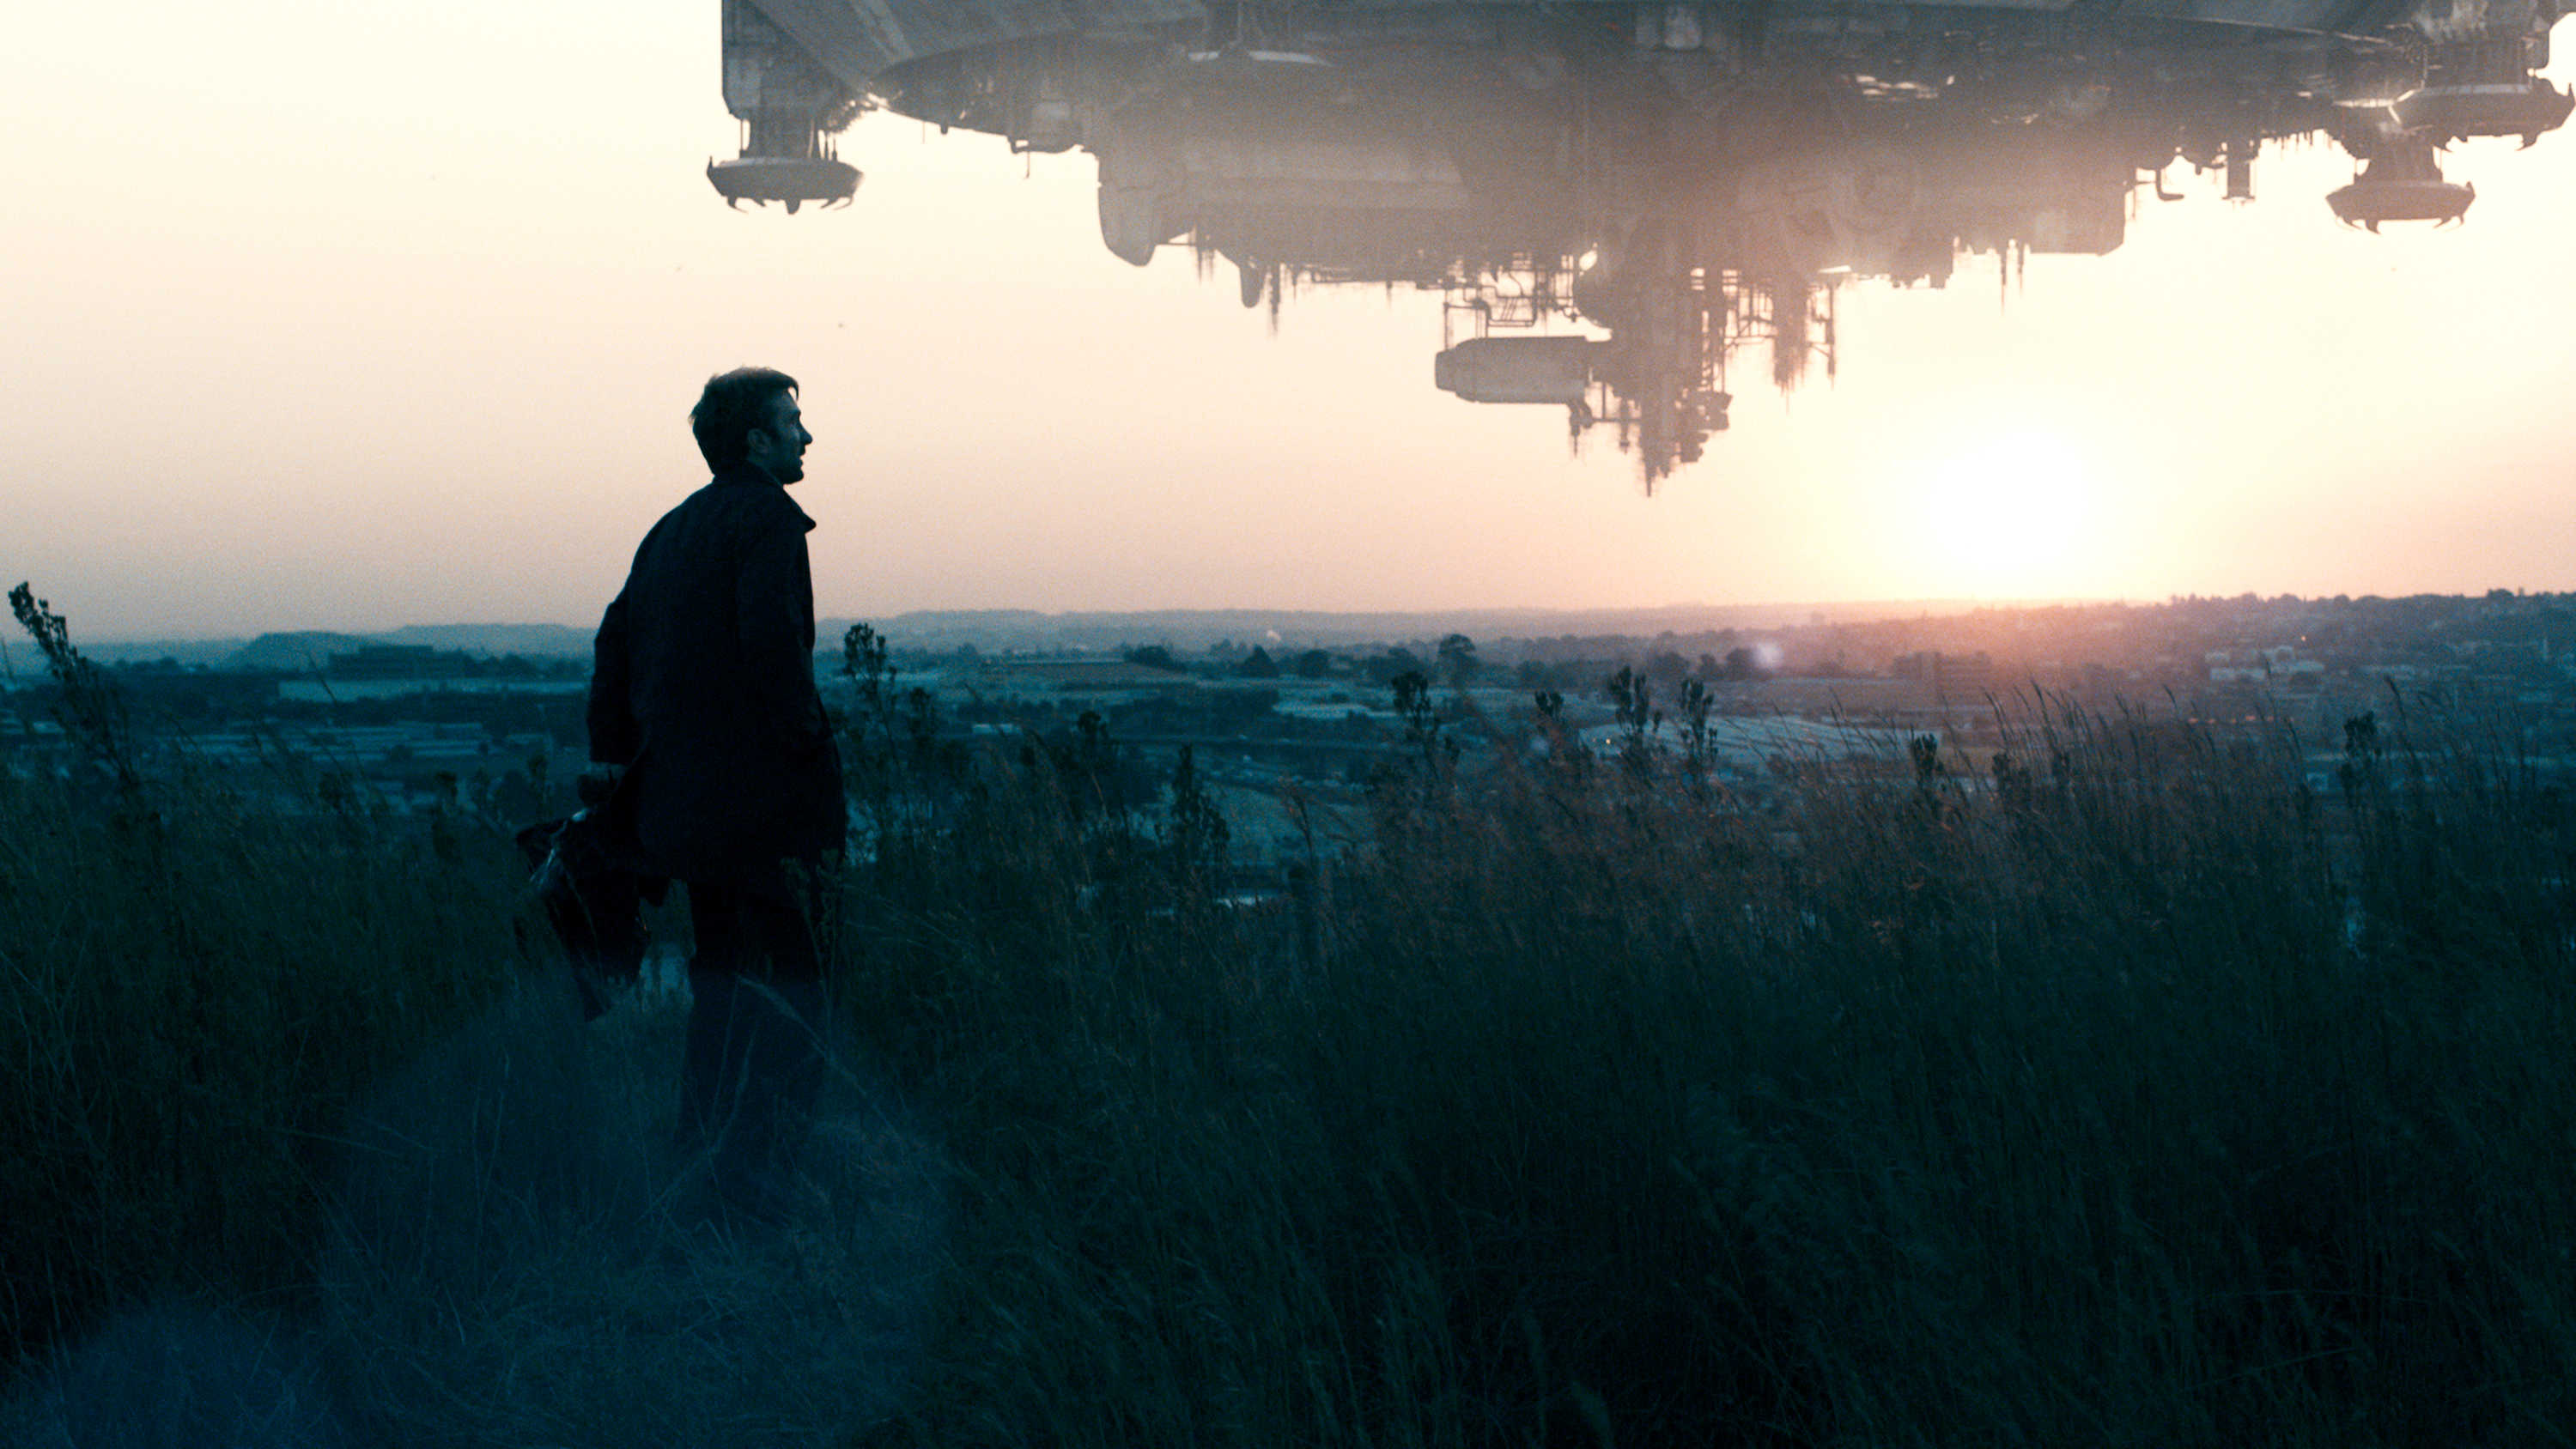 district 9 computer wallpapers - photo #25